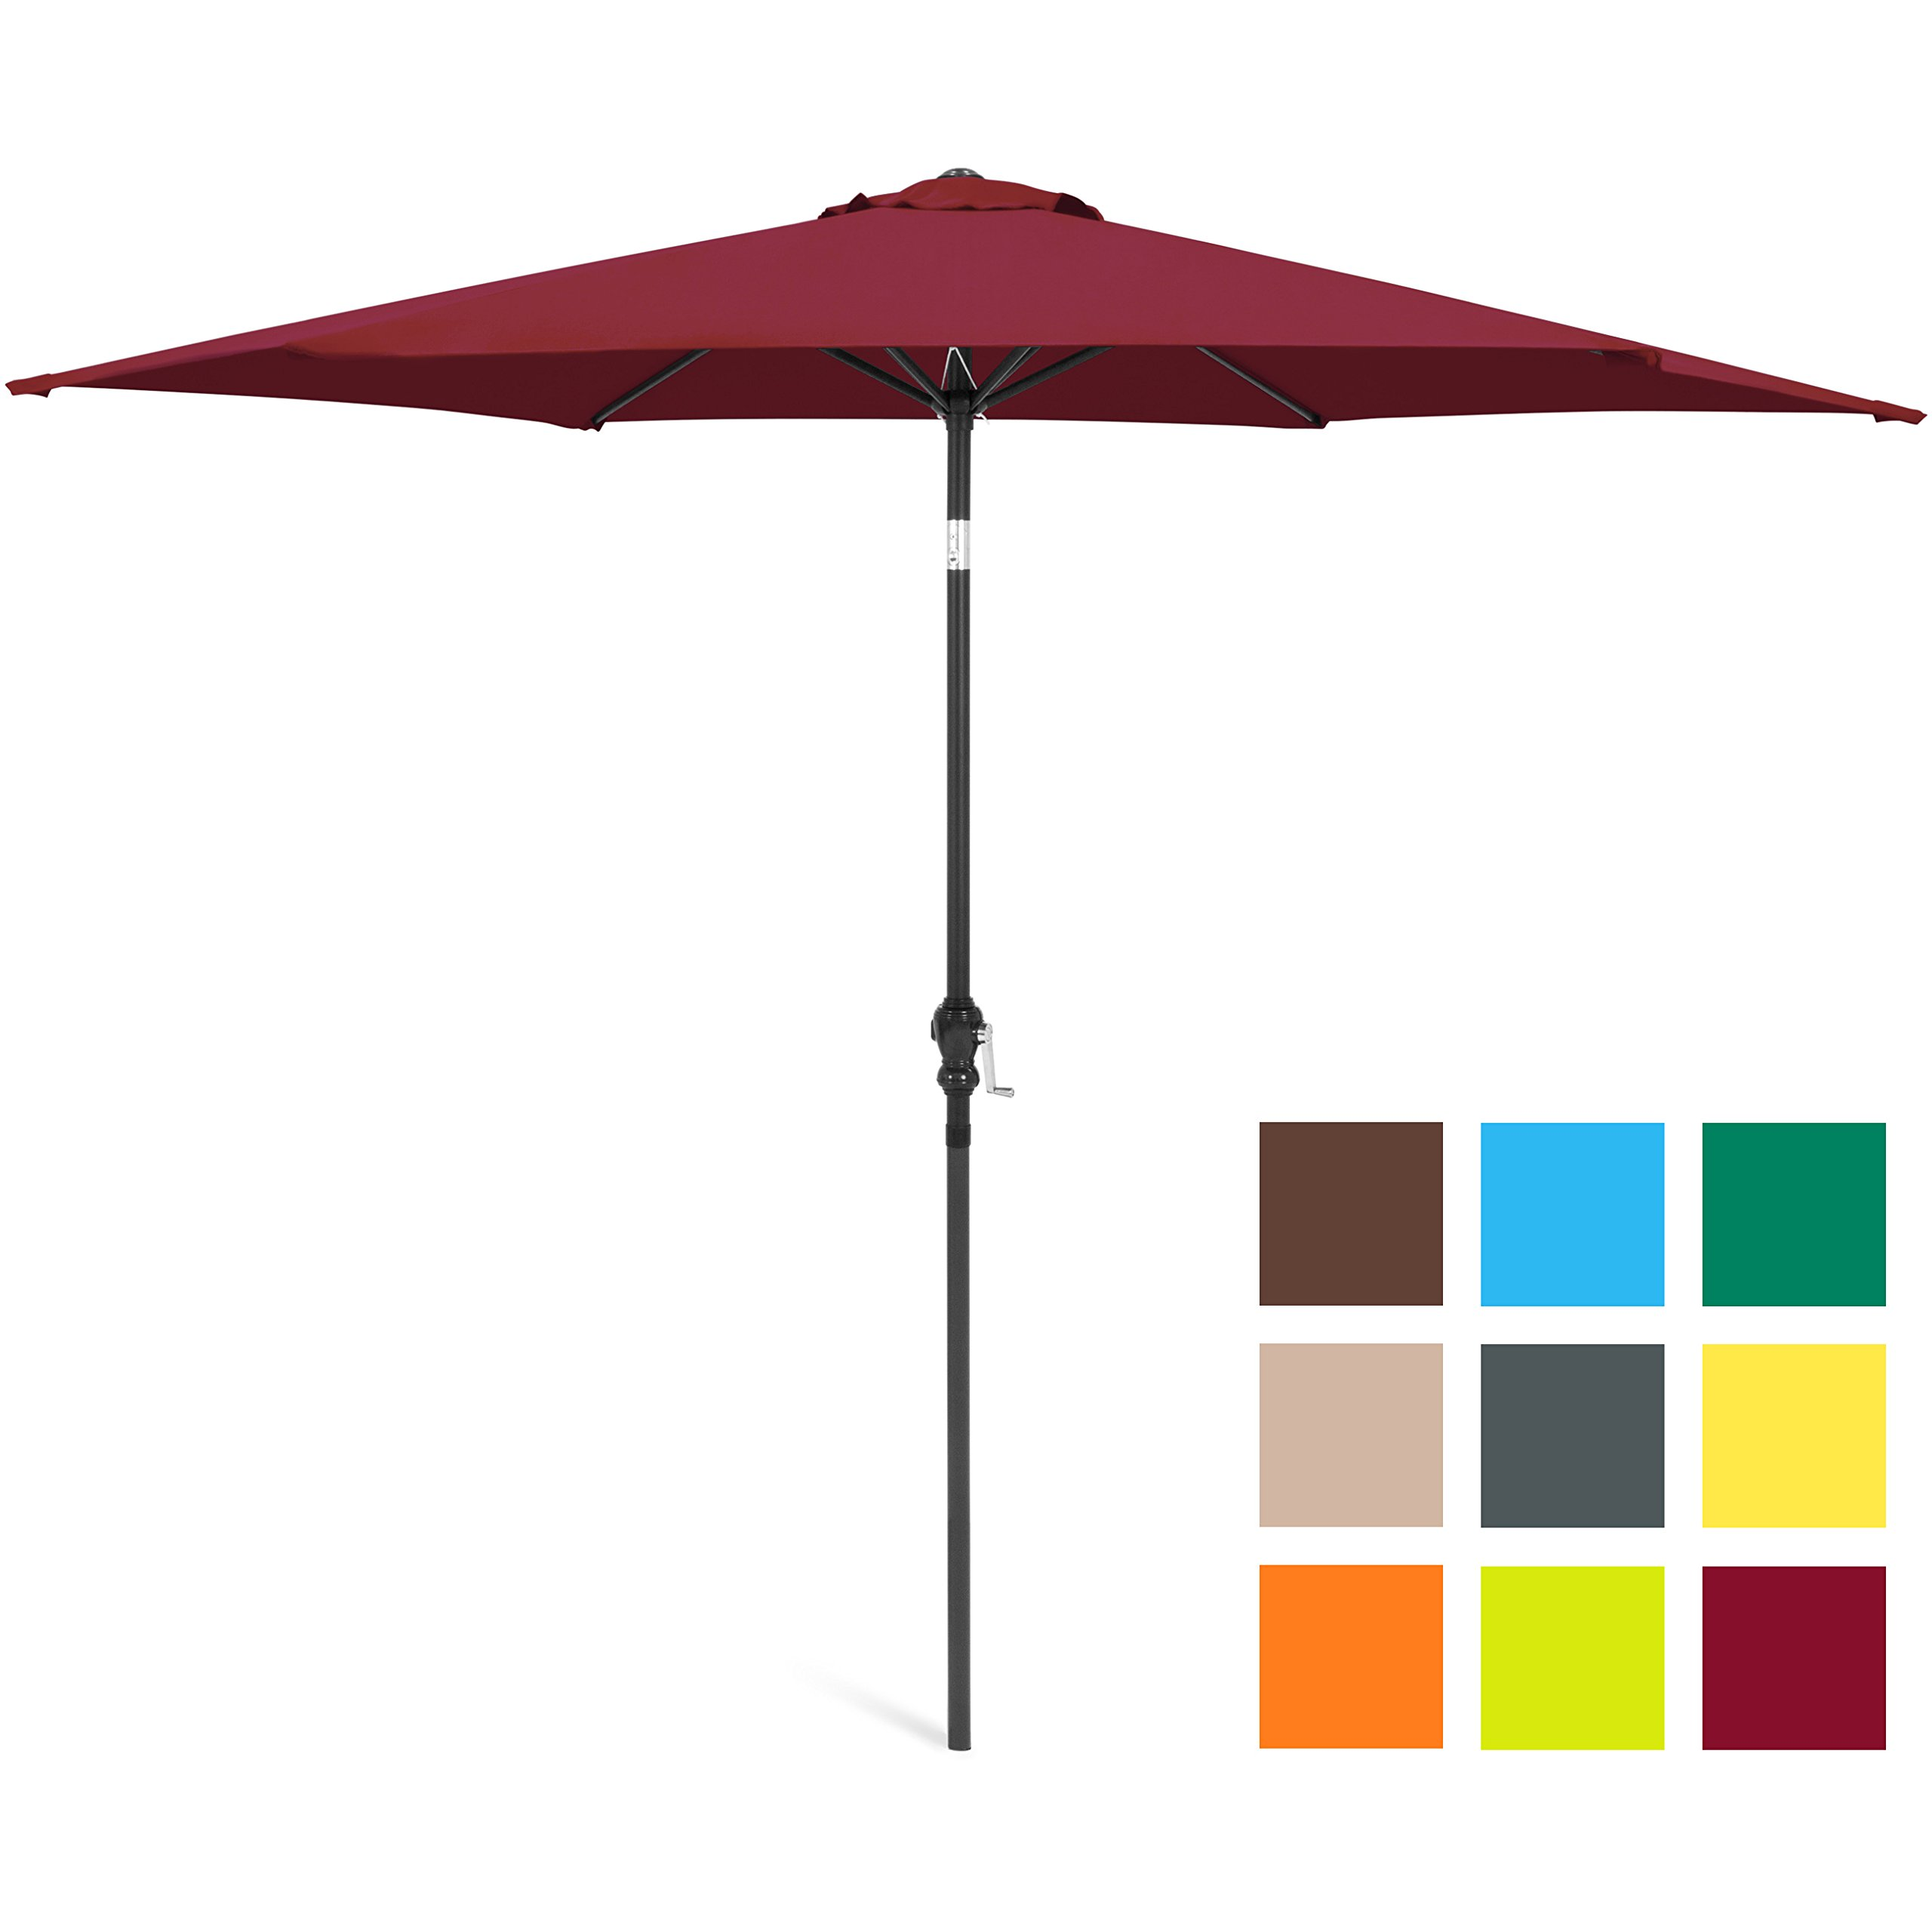 Best Choice Products 10ft Outdoor Steel Market Backyard Garden Patio Umbrella w/ Crank, Easy Push Button Tilt, 6 Ribs, Table Compatible - Burgundy by Best Choice Products